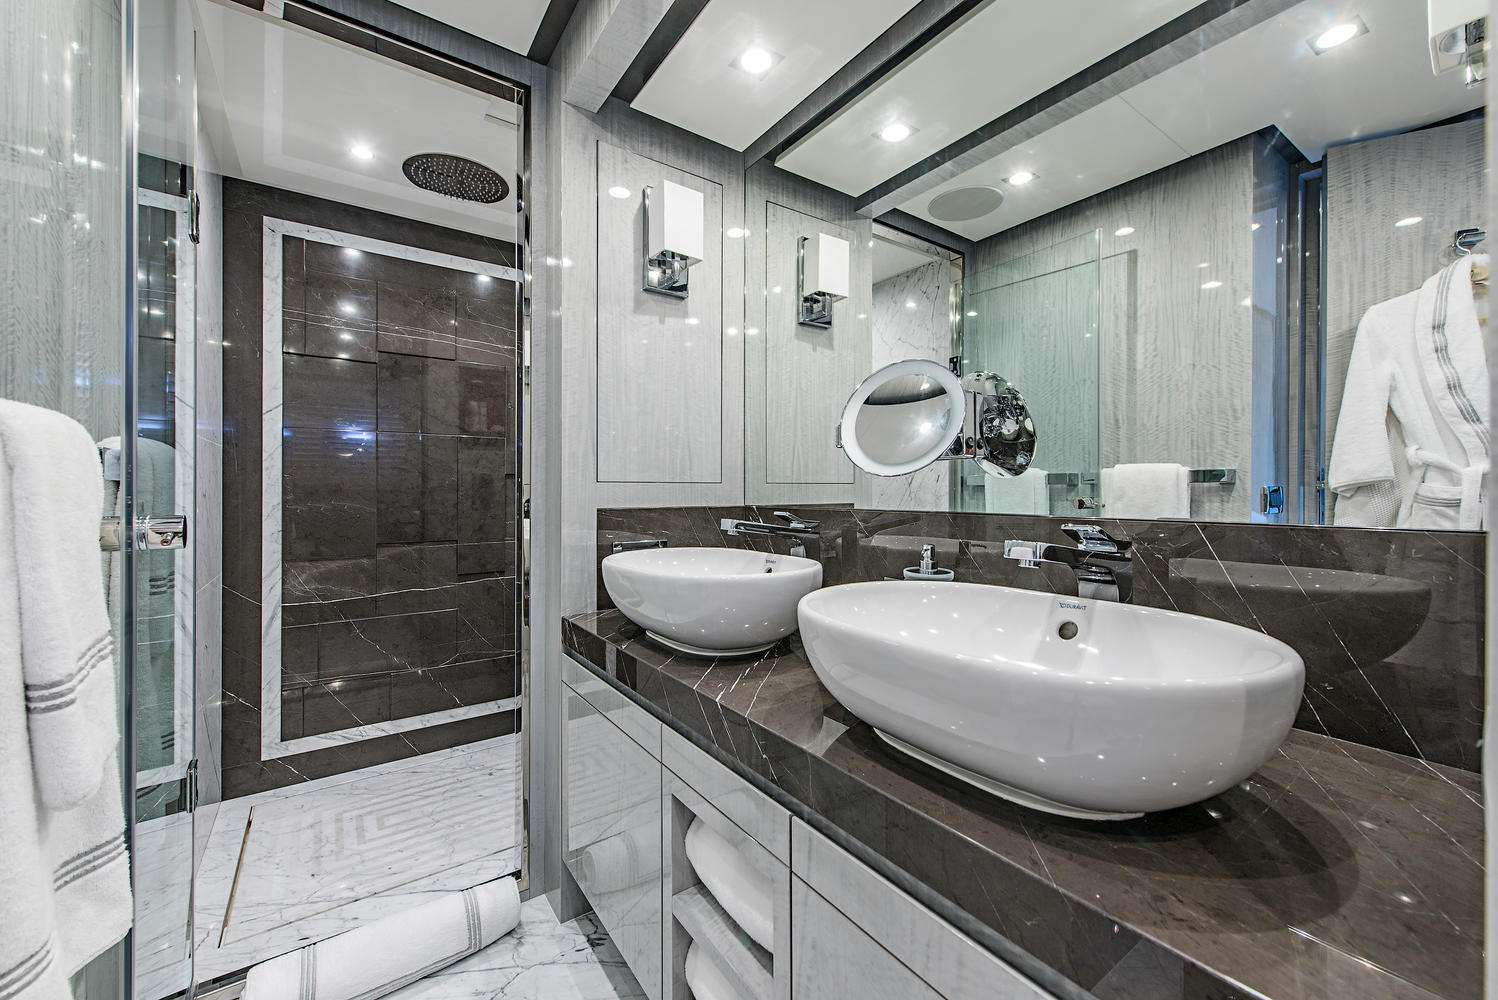 The en-suite master bathroom features Italian marble and rainforest shower with tasteful detailing and ample space.